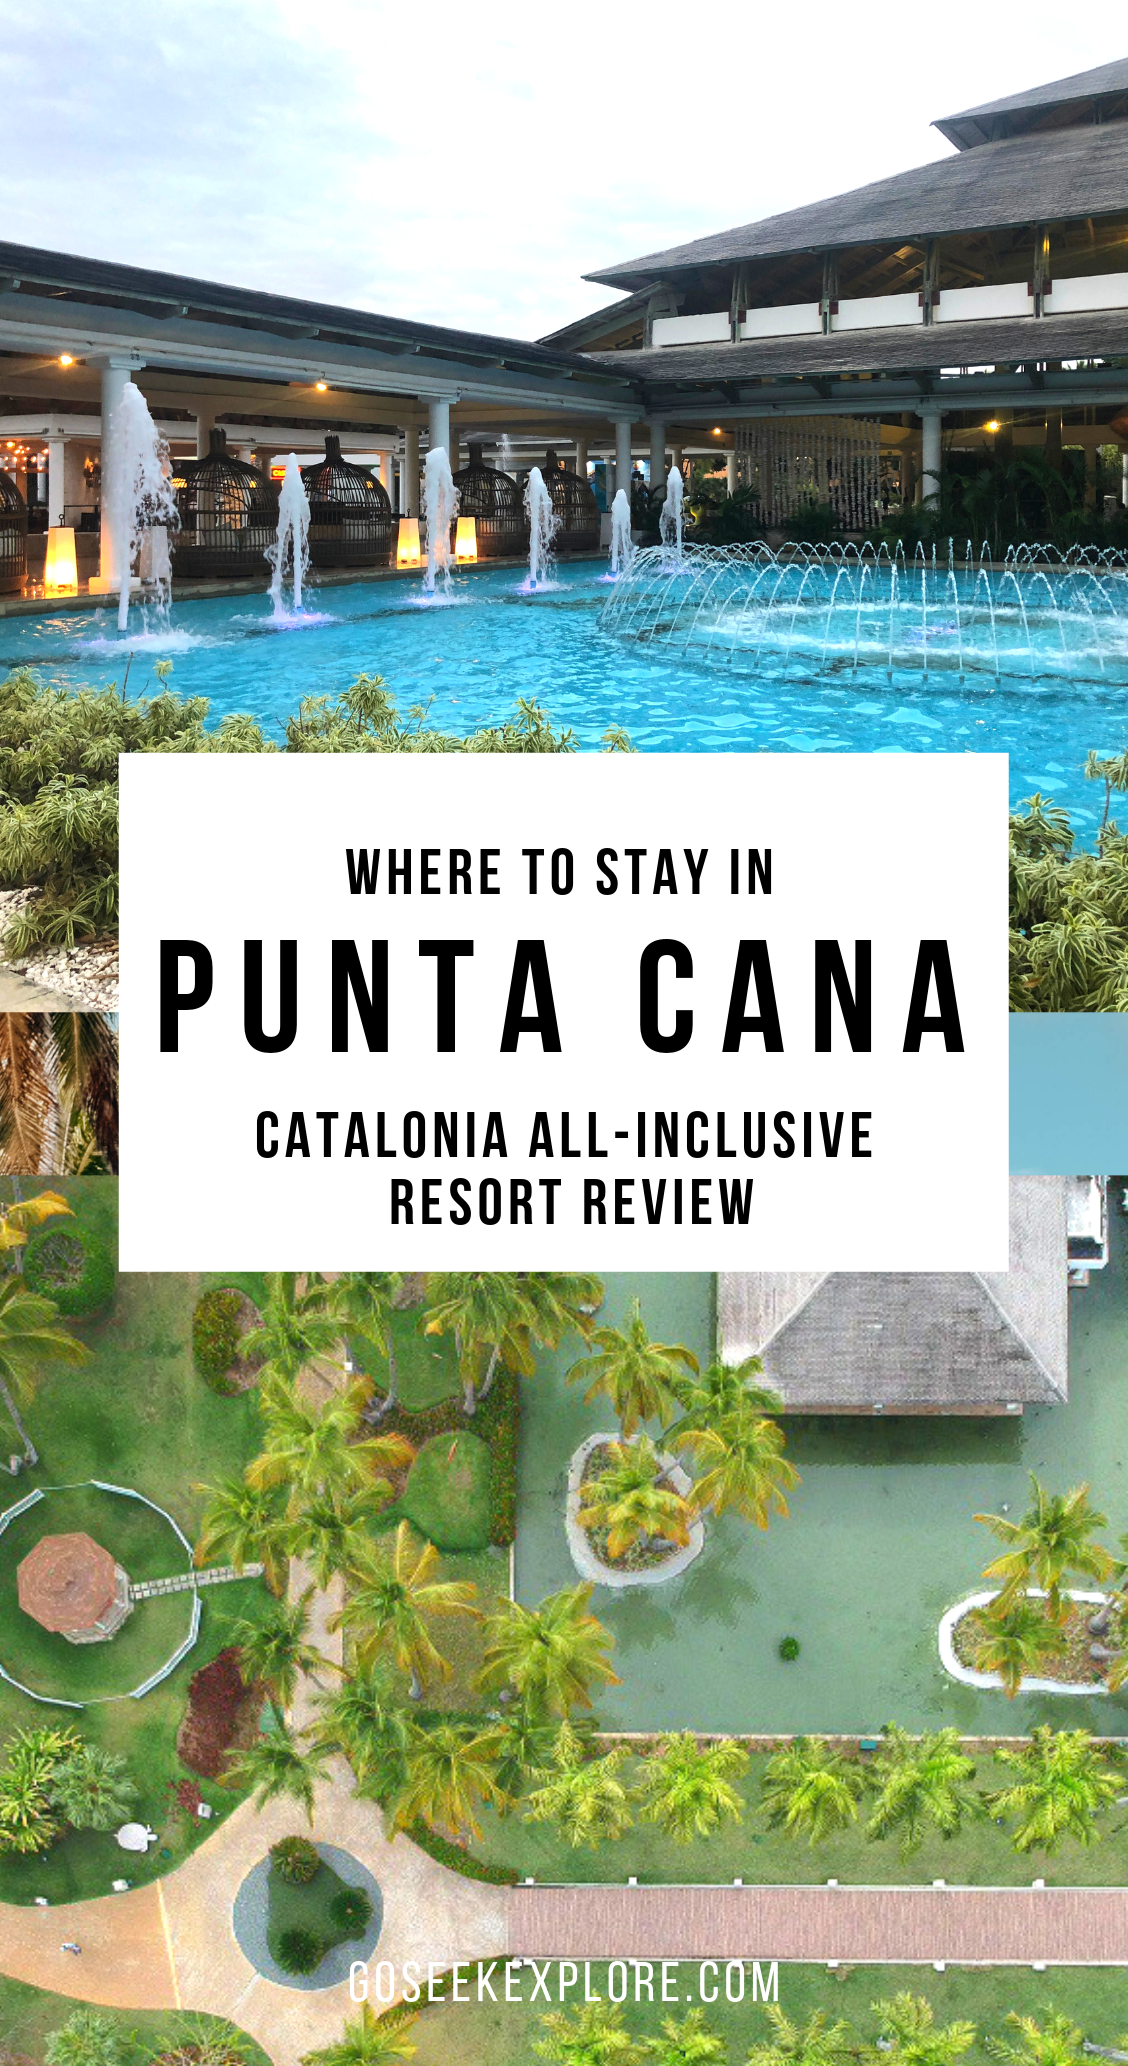 Where to stay in Punta Cana - there are many resorts to consider, and Catalonia Punta Cana All-inclusive Resort is amazing! Click through for a review on this property - goseekexplore.com